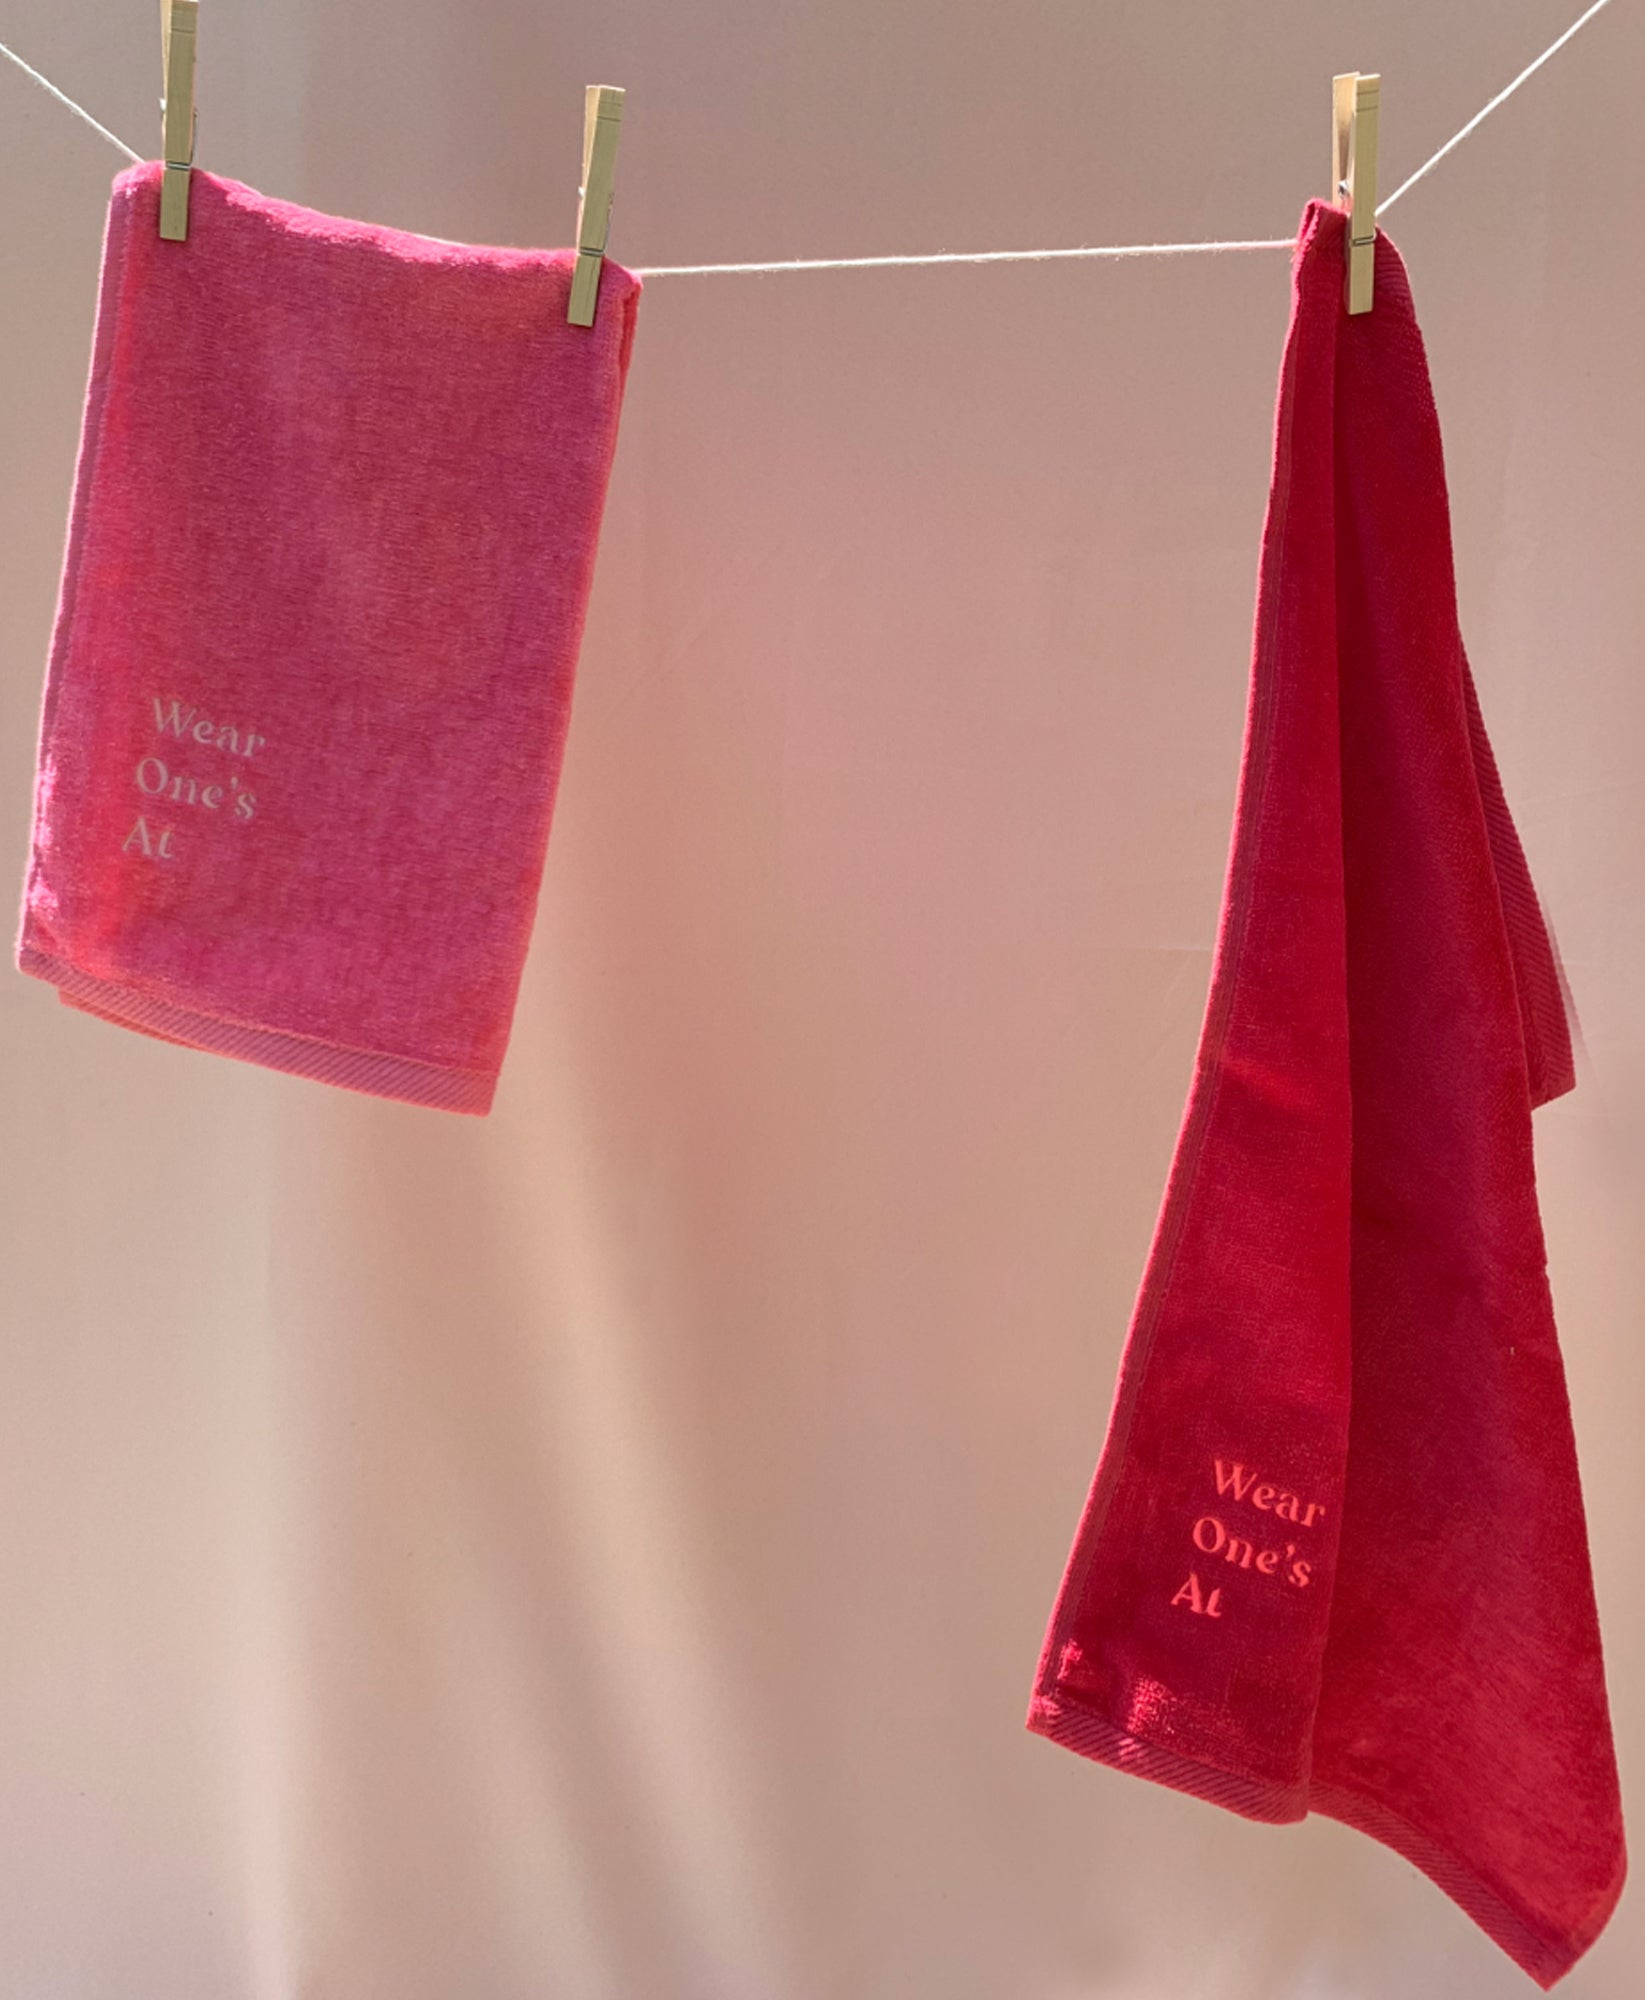 Wear One's At Logo Sport Towel in Punch Pink and Cherry Red